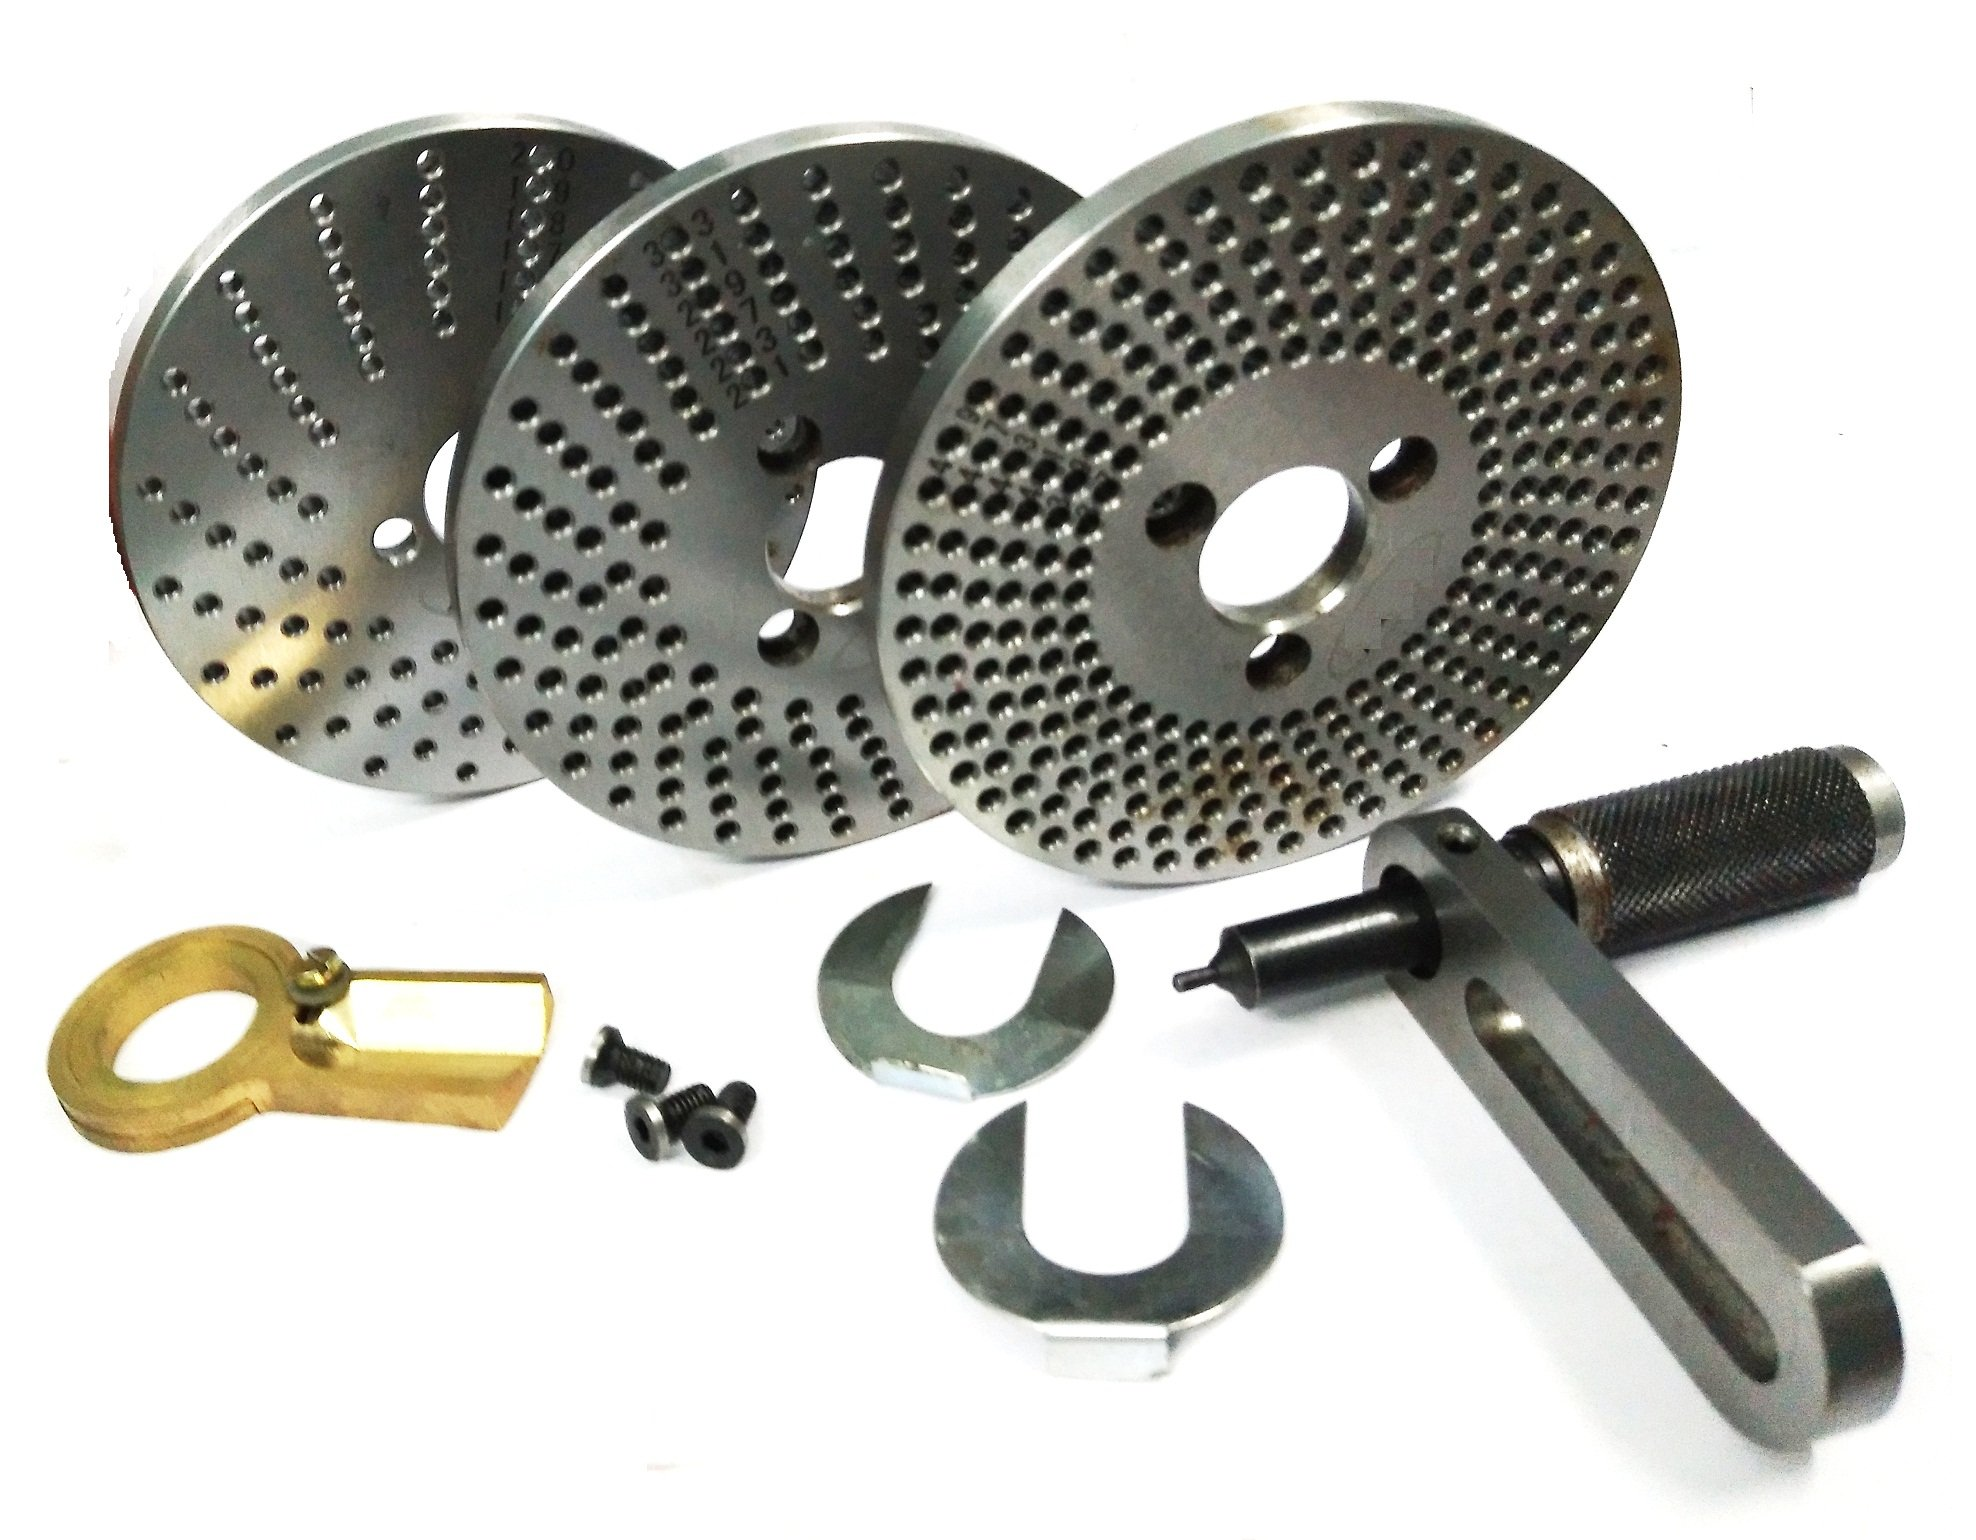 Steel Dividing Plates Set for HV4 /HV6 Rotary Table with Working Manual-Milling Indexing Kit